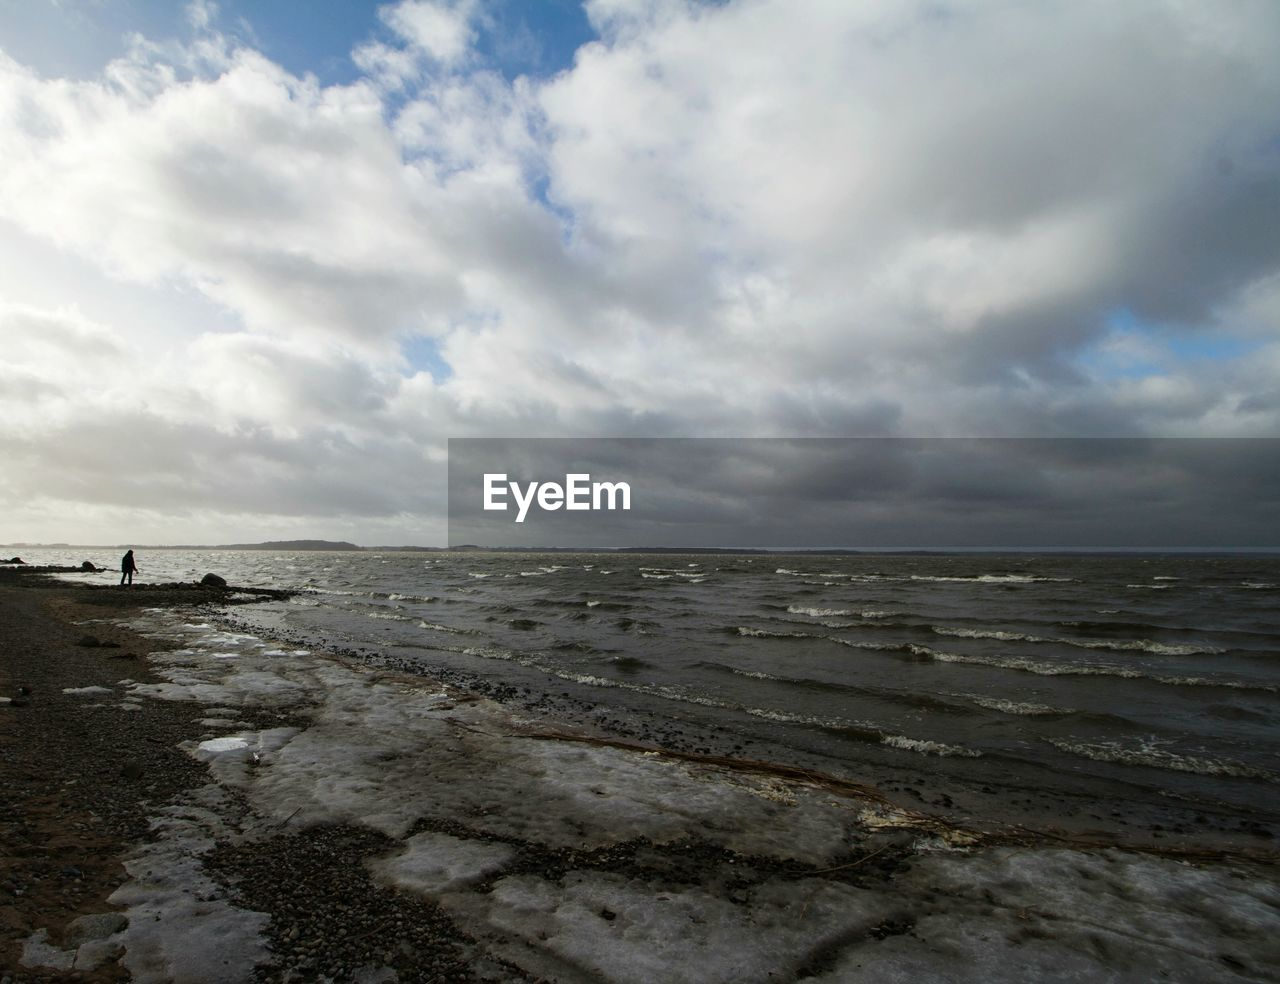 sea, beach, horizon over water, water, sky, cloud - sky, nature, scenics, shore, tranquil scene, beauty in nature, tranquility, sand, outdoors, day, wave, low tide, no people